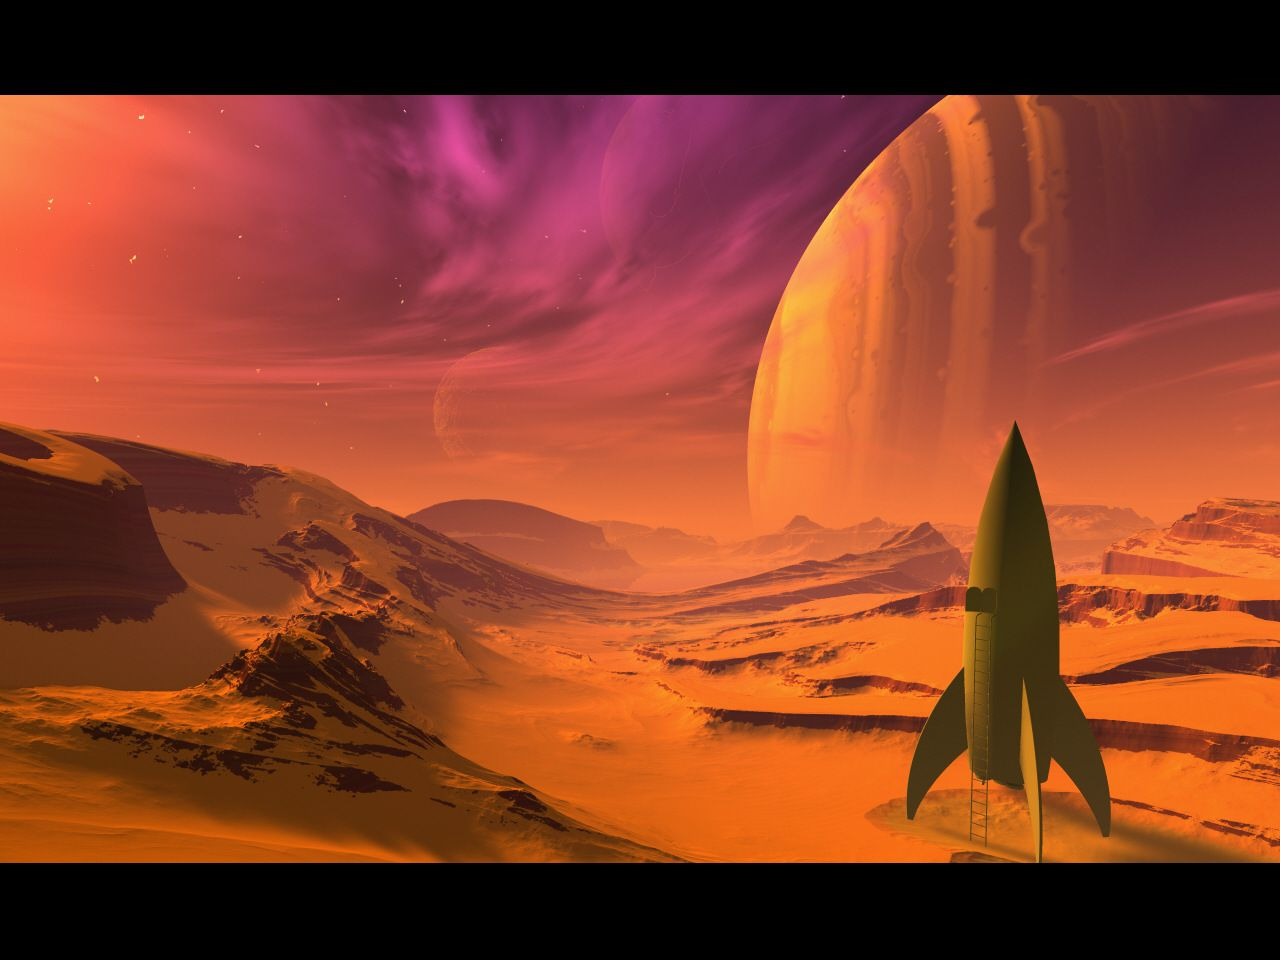 1950s Sci Fi Wallpapers Top Free 1950s Sci Fi Backgrounds